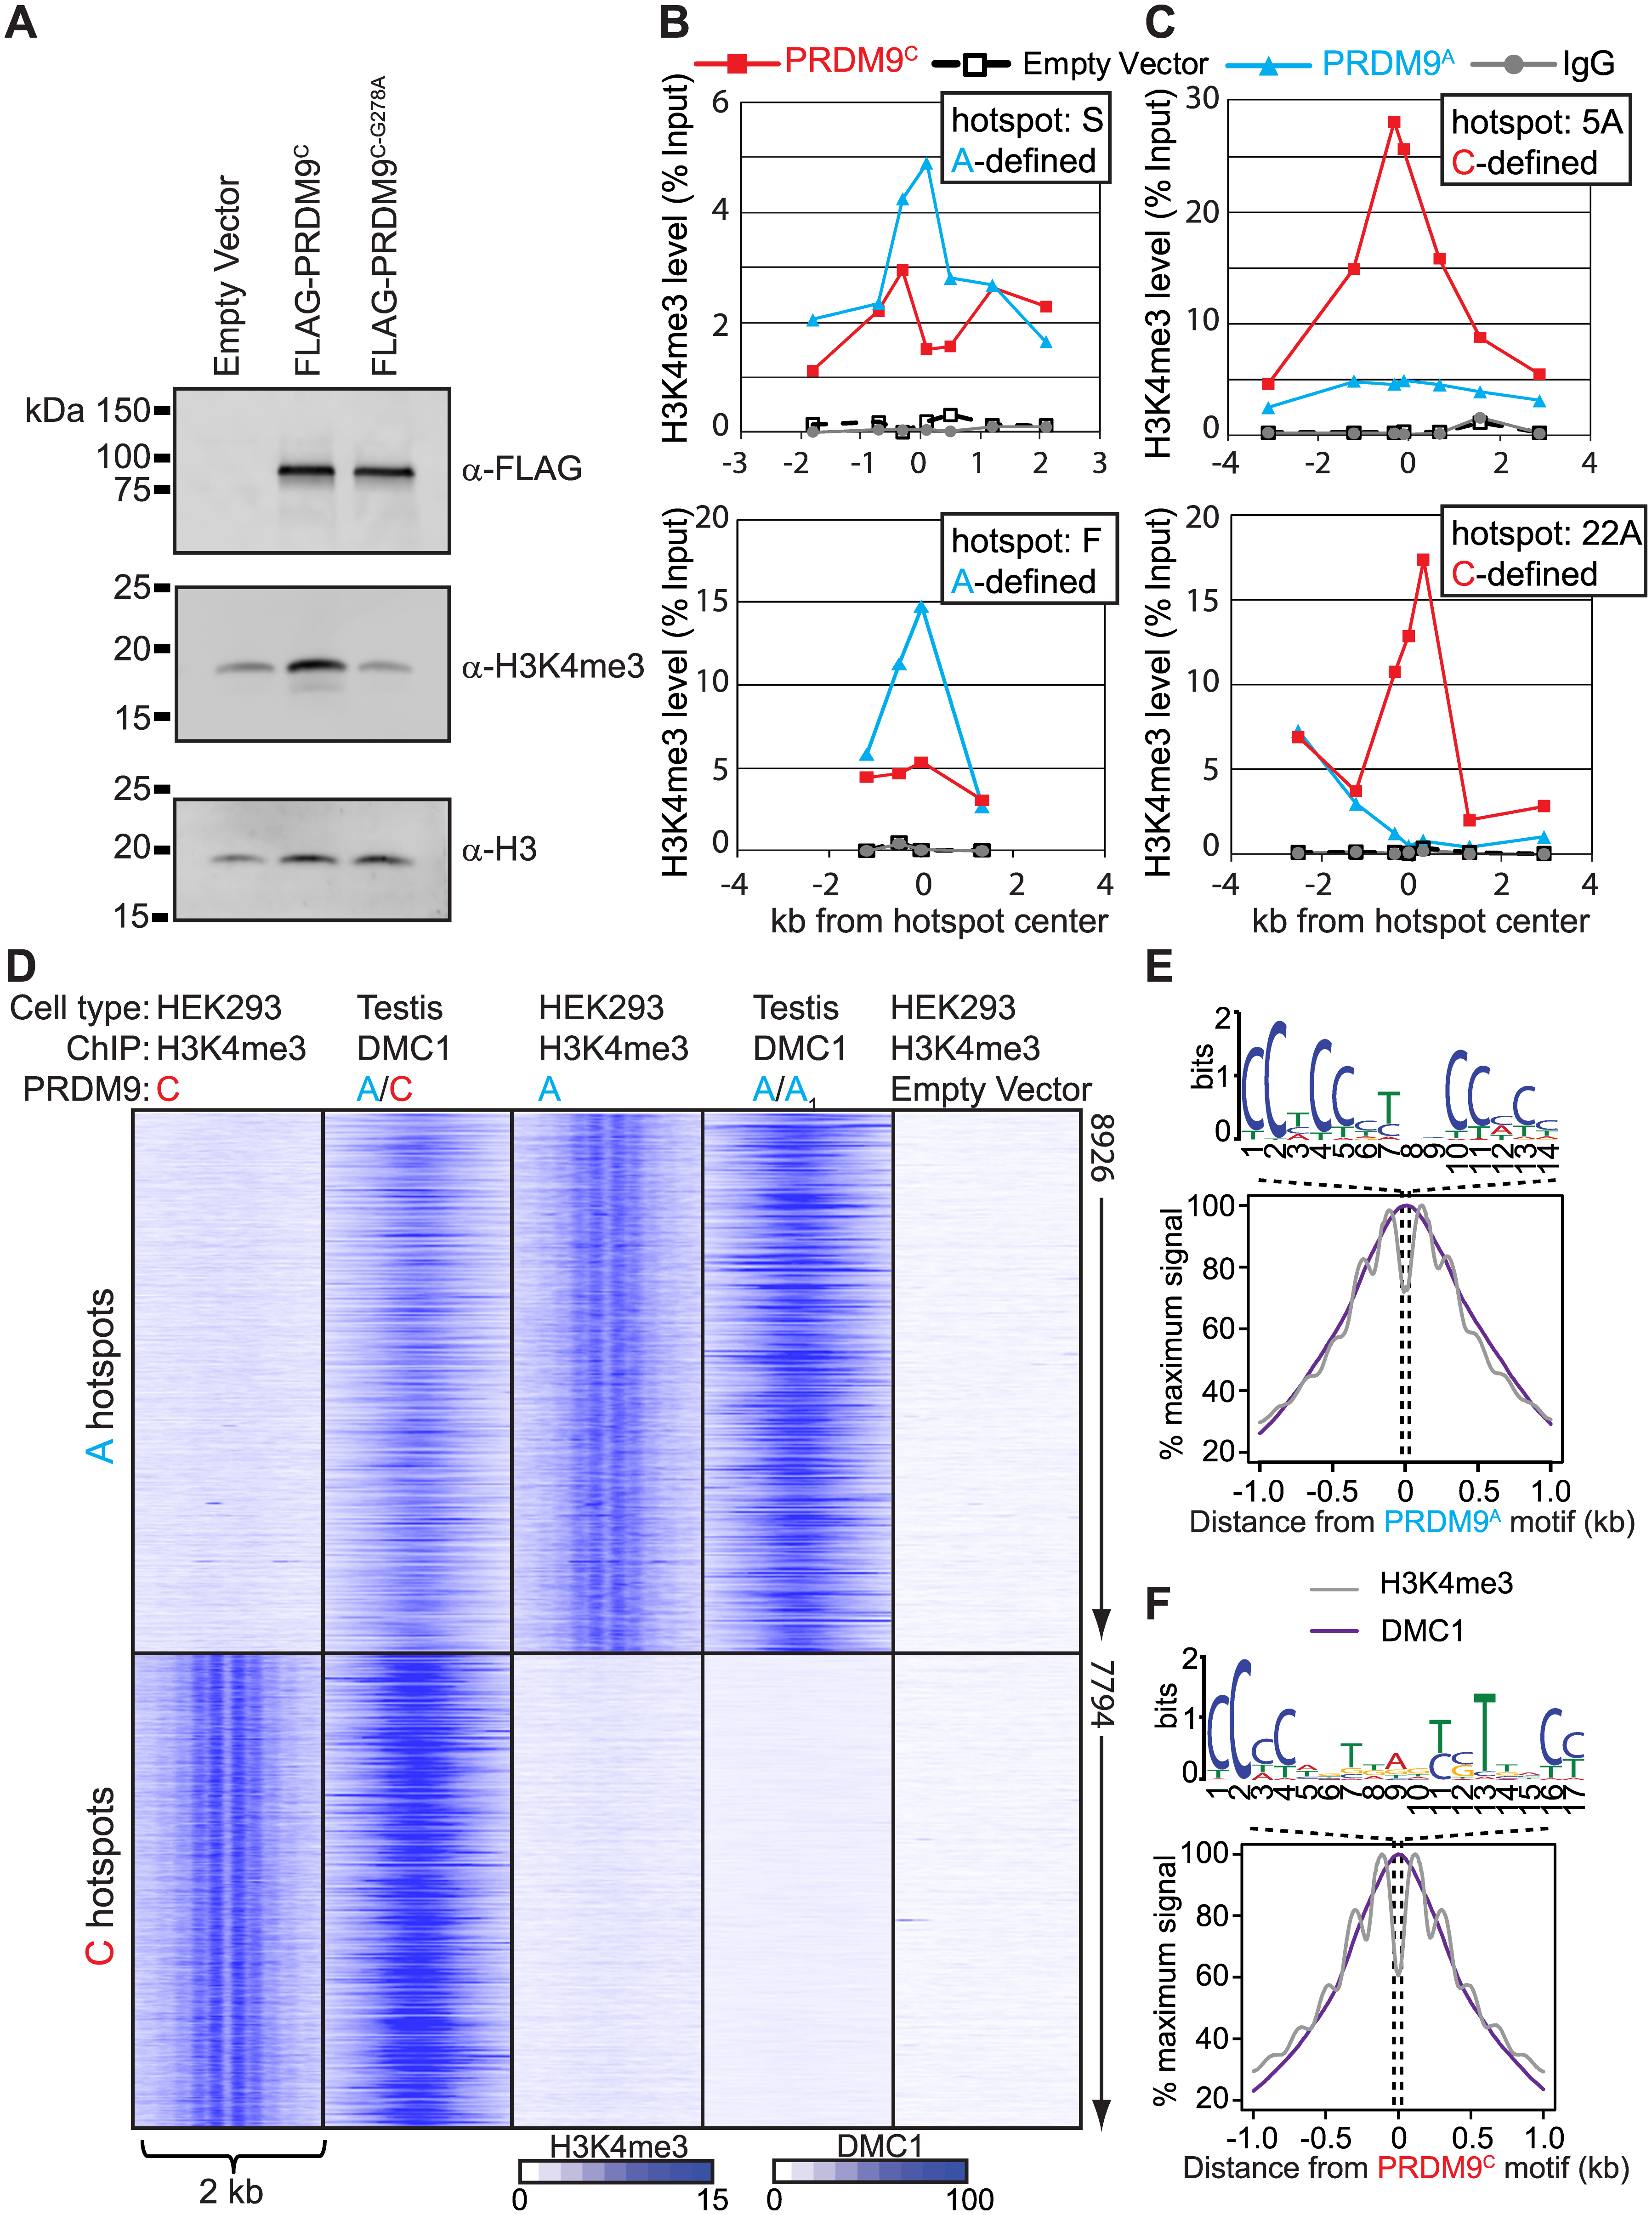 Expression of <i>PRDM9</i> in HEK293 cells recapitulates allele-specific hotspot activation in vivo.